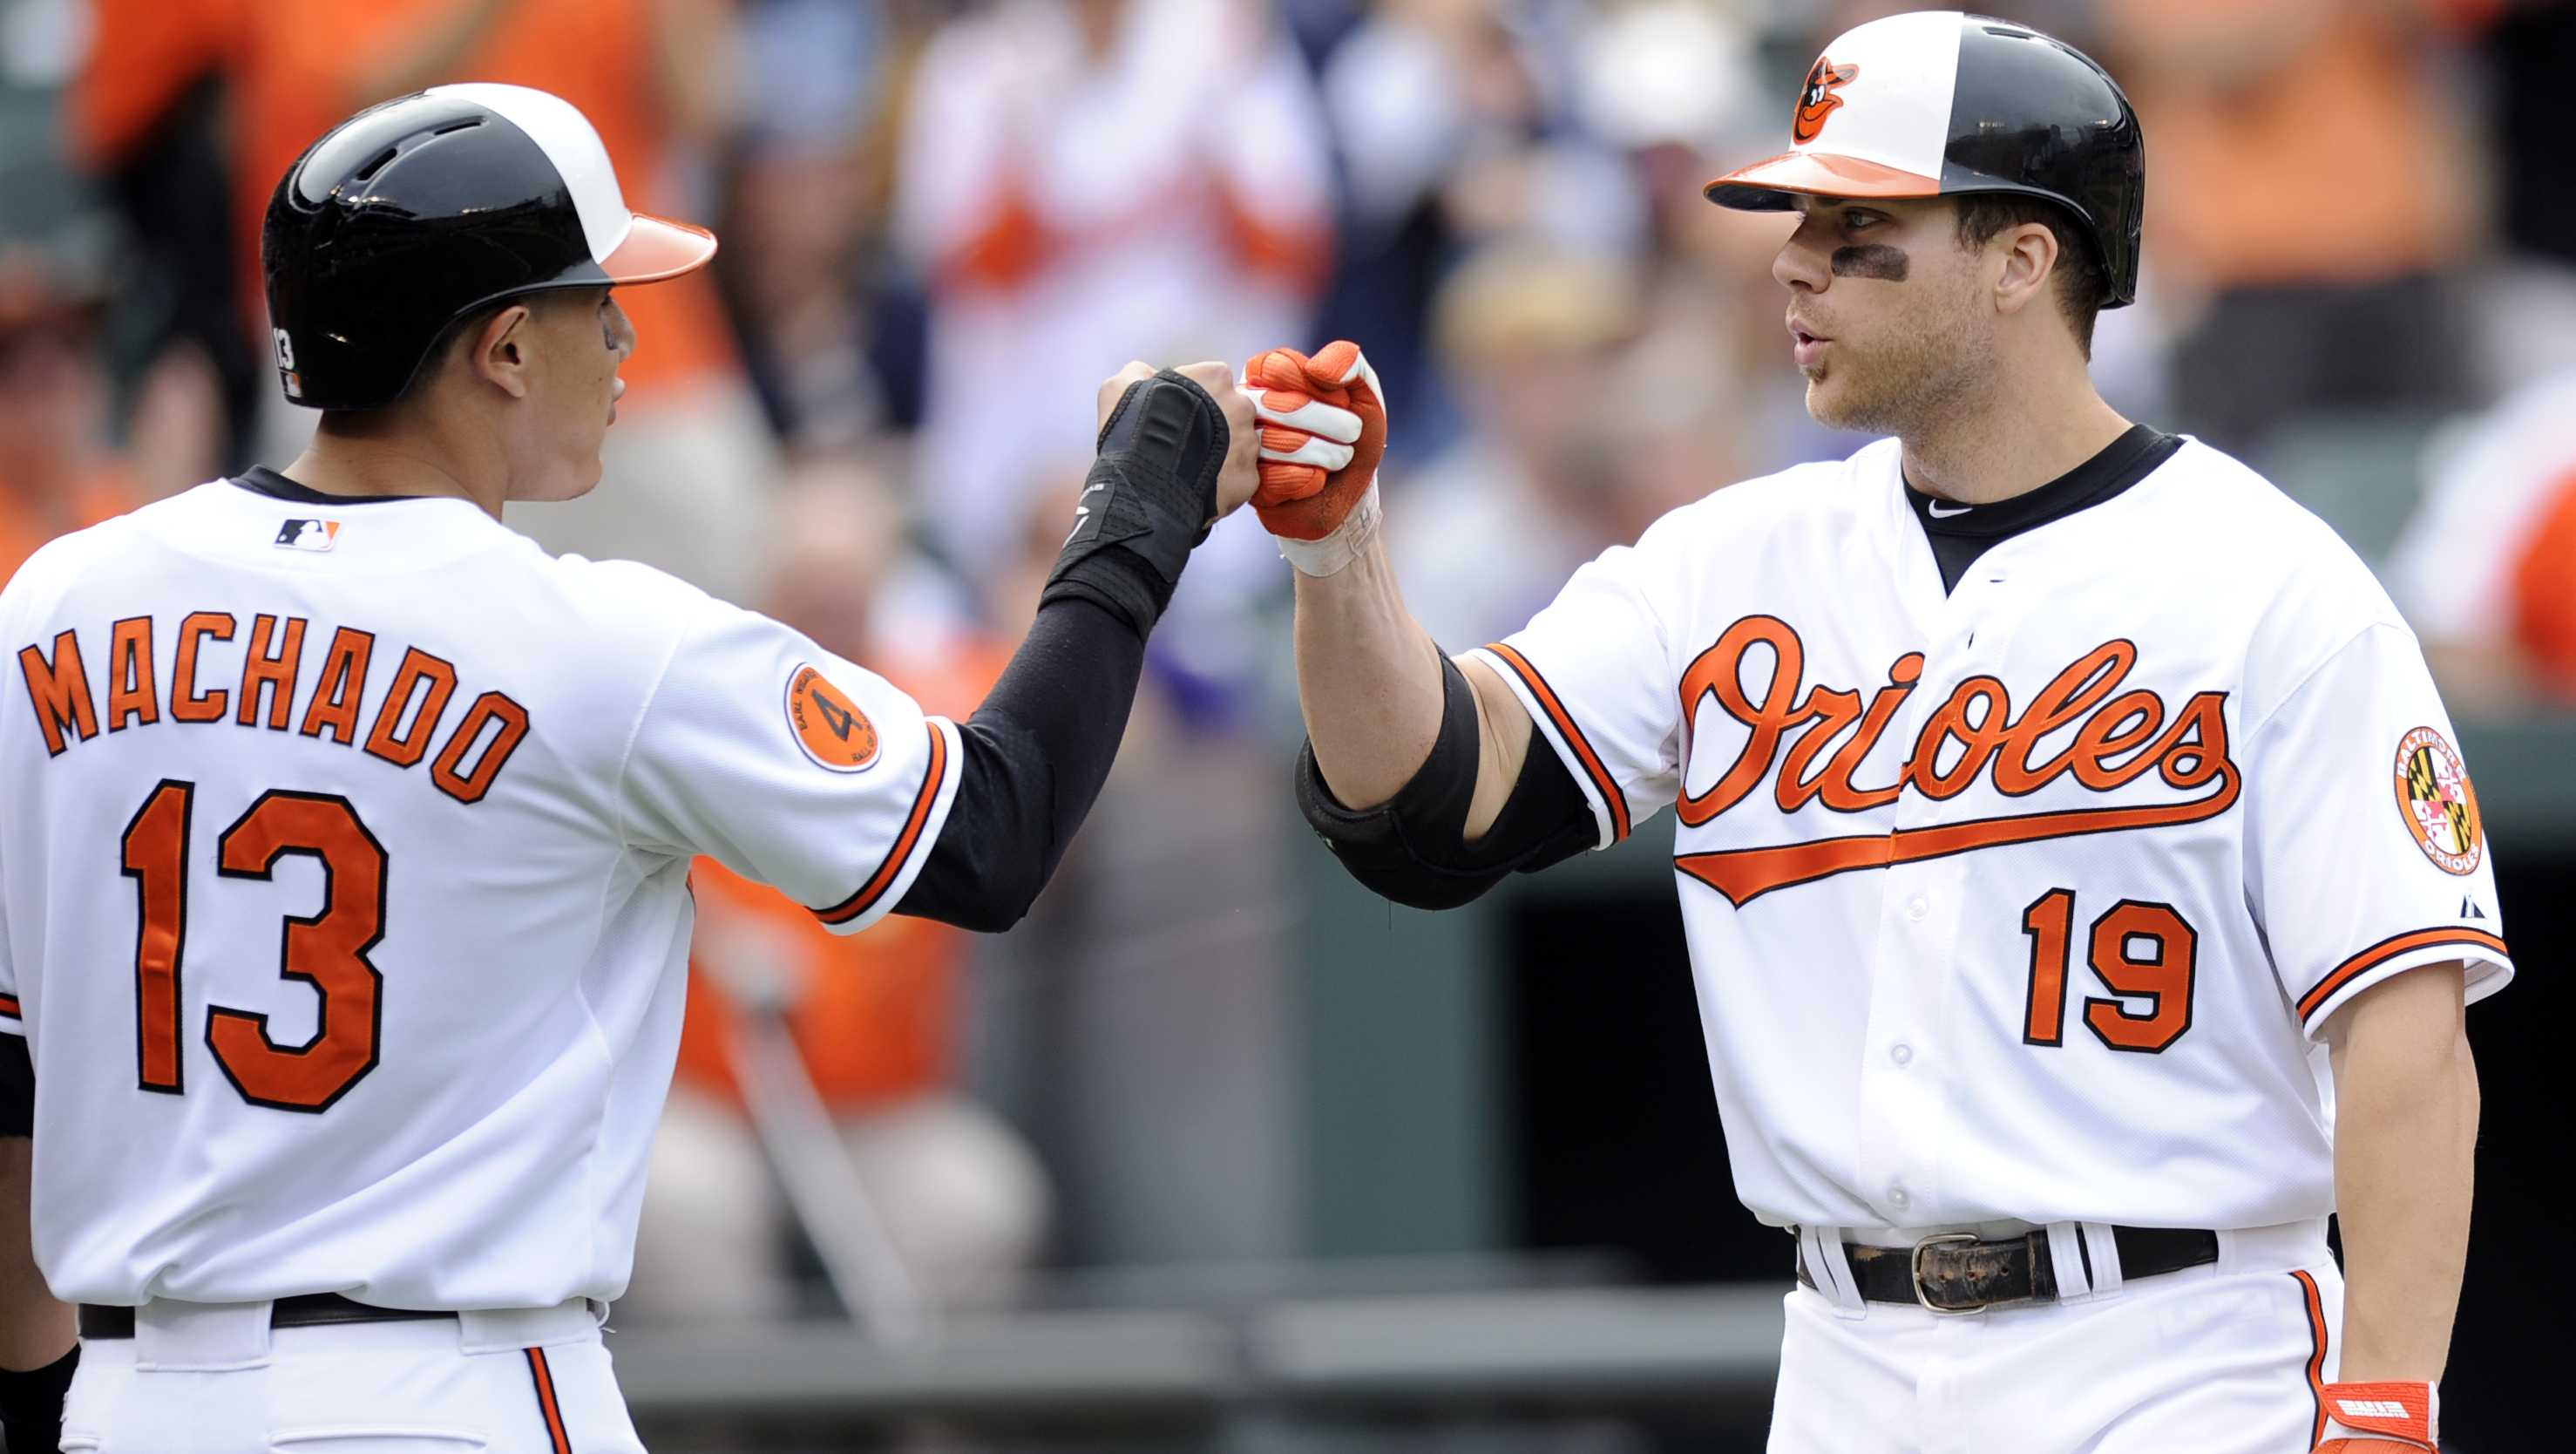 Manny Machado, Chris Davis